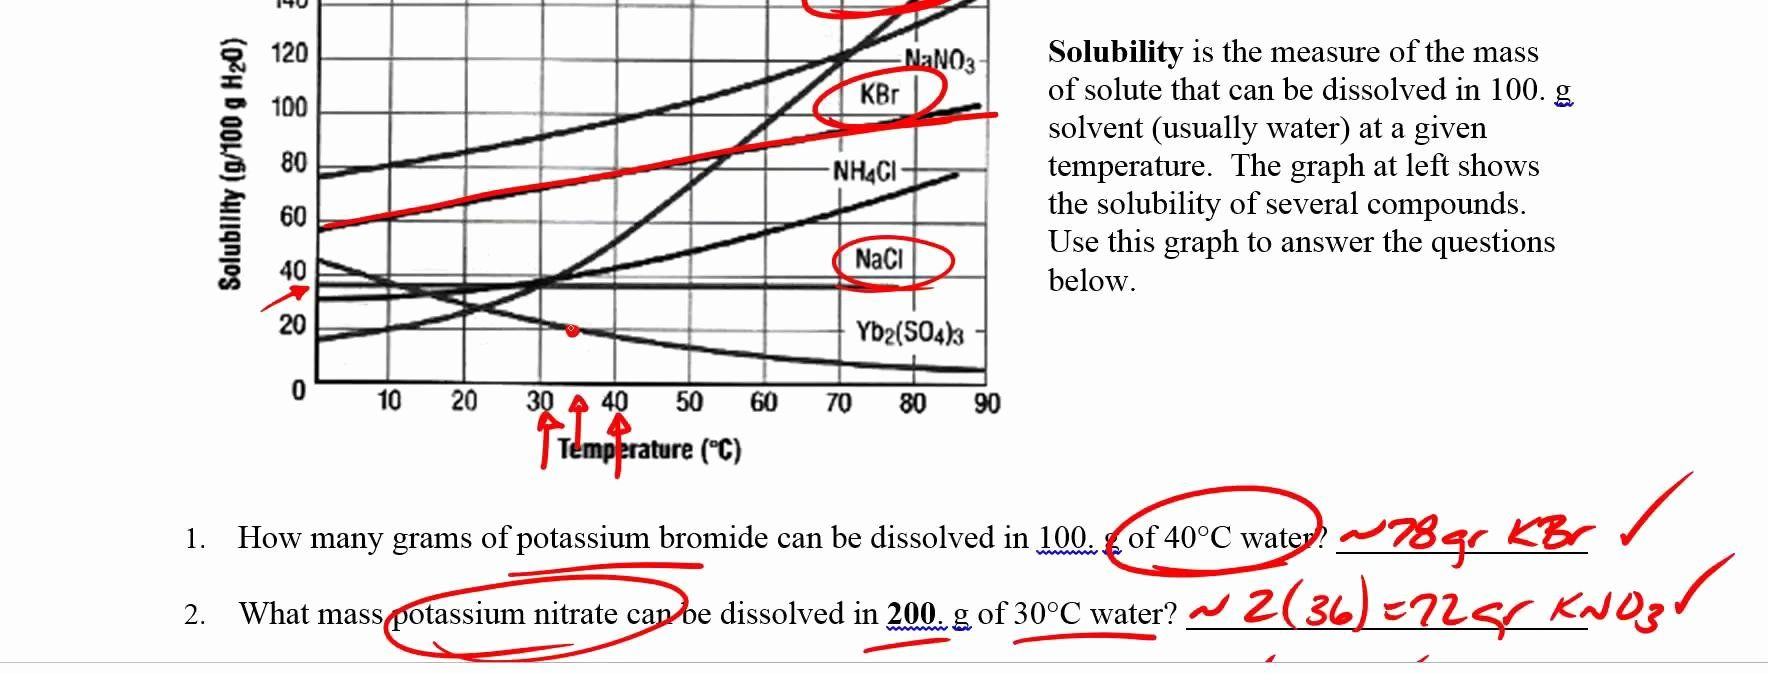 Solubility Graph Worksheet Answers Best Of solubility